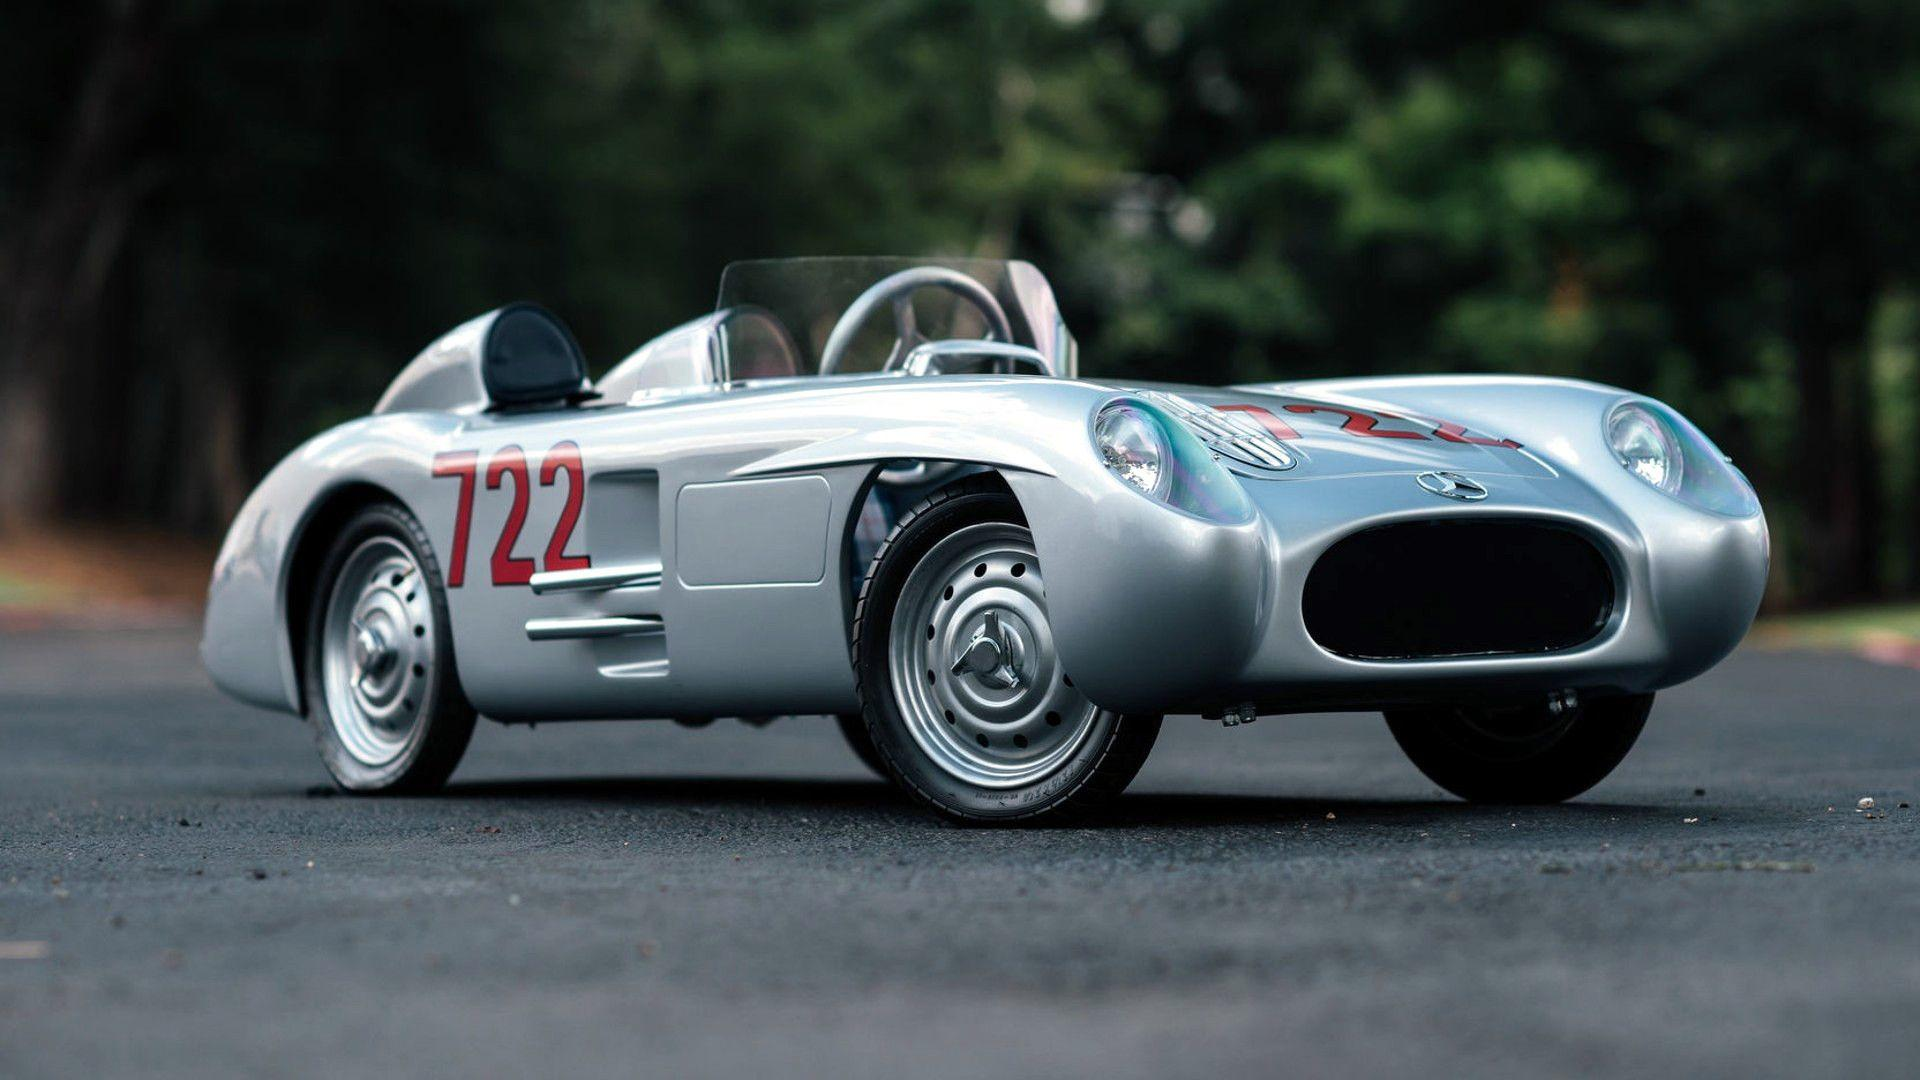 Spoil Your Kid With These Go-Kart Replicas Of Classic Cars [UPDATE]